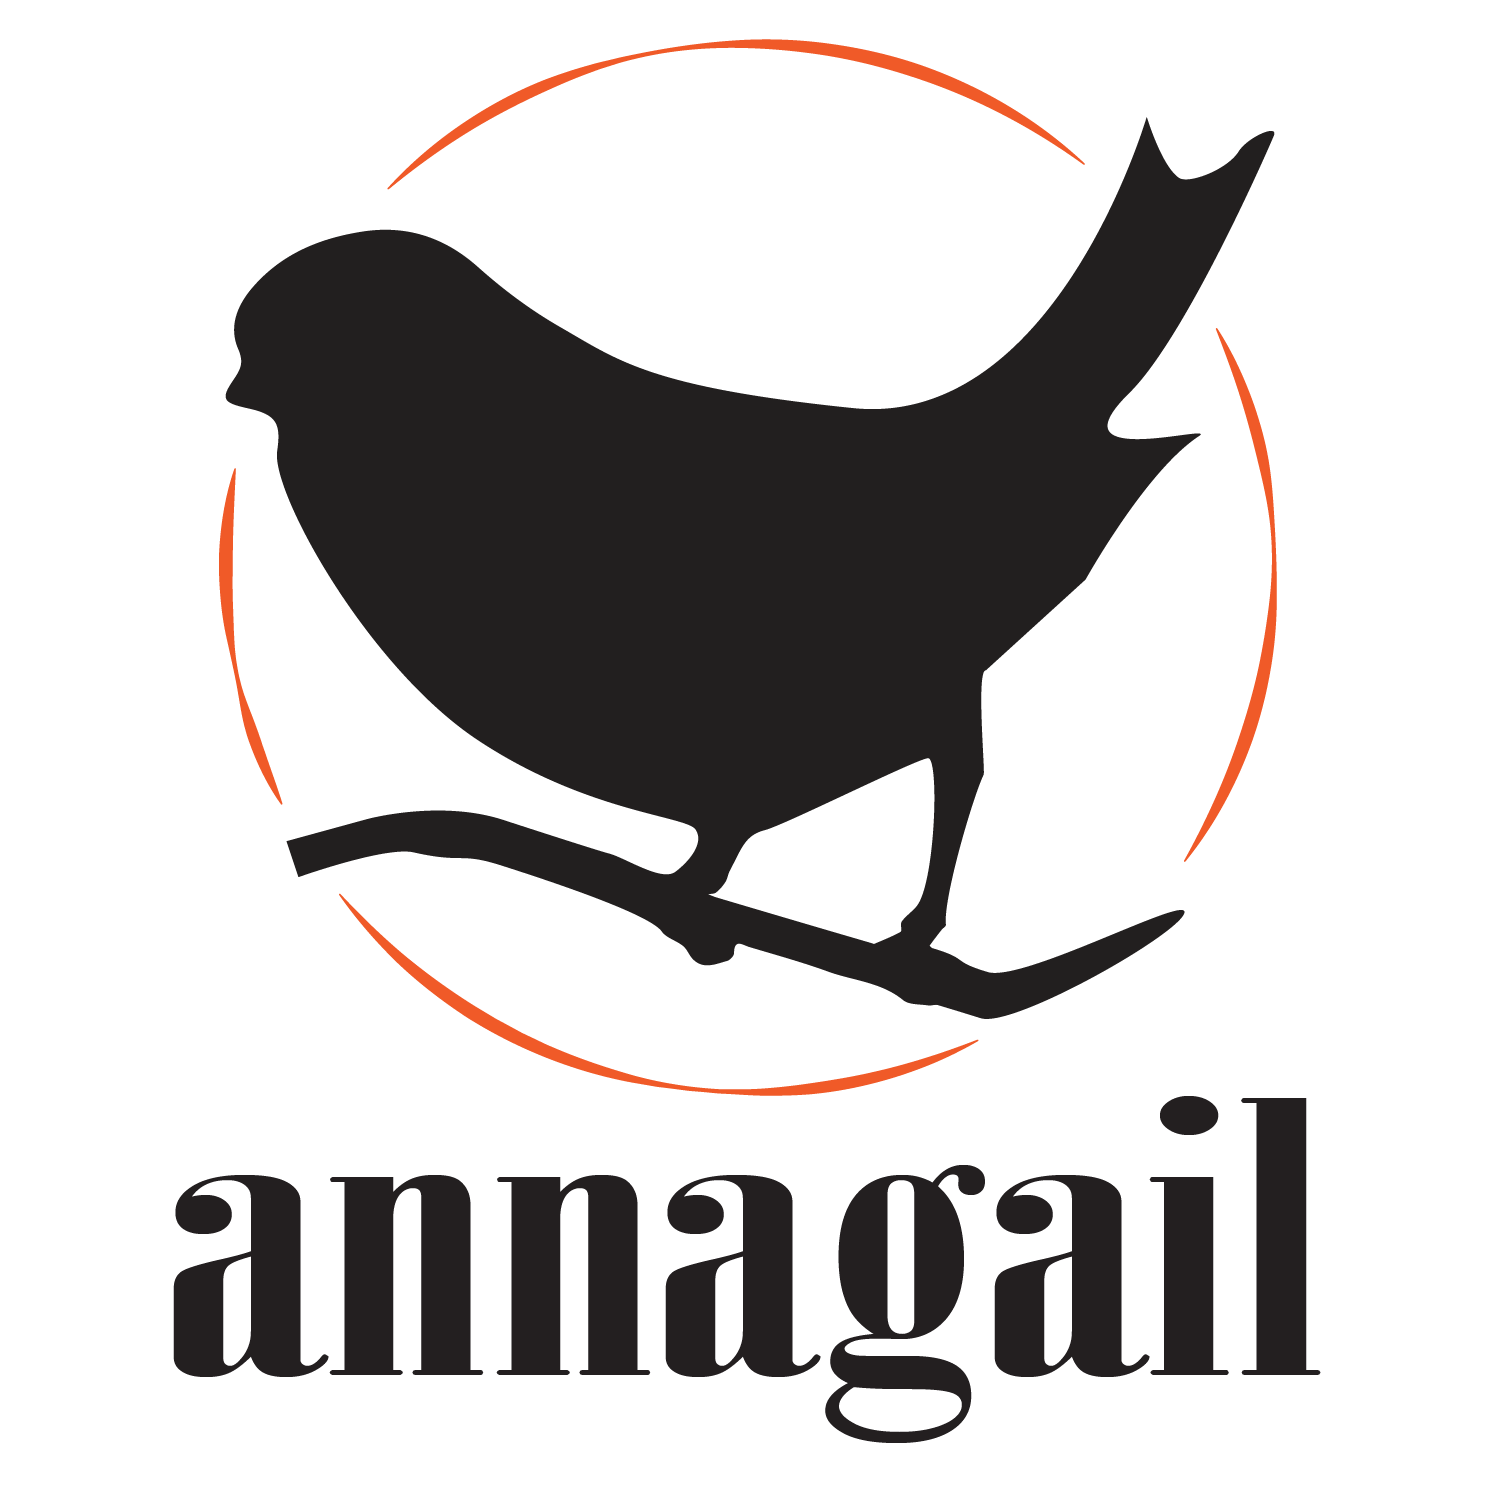 Annagail // Official Site